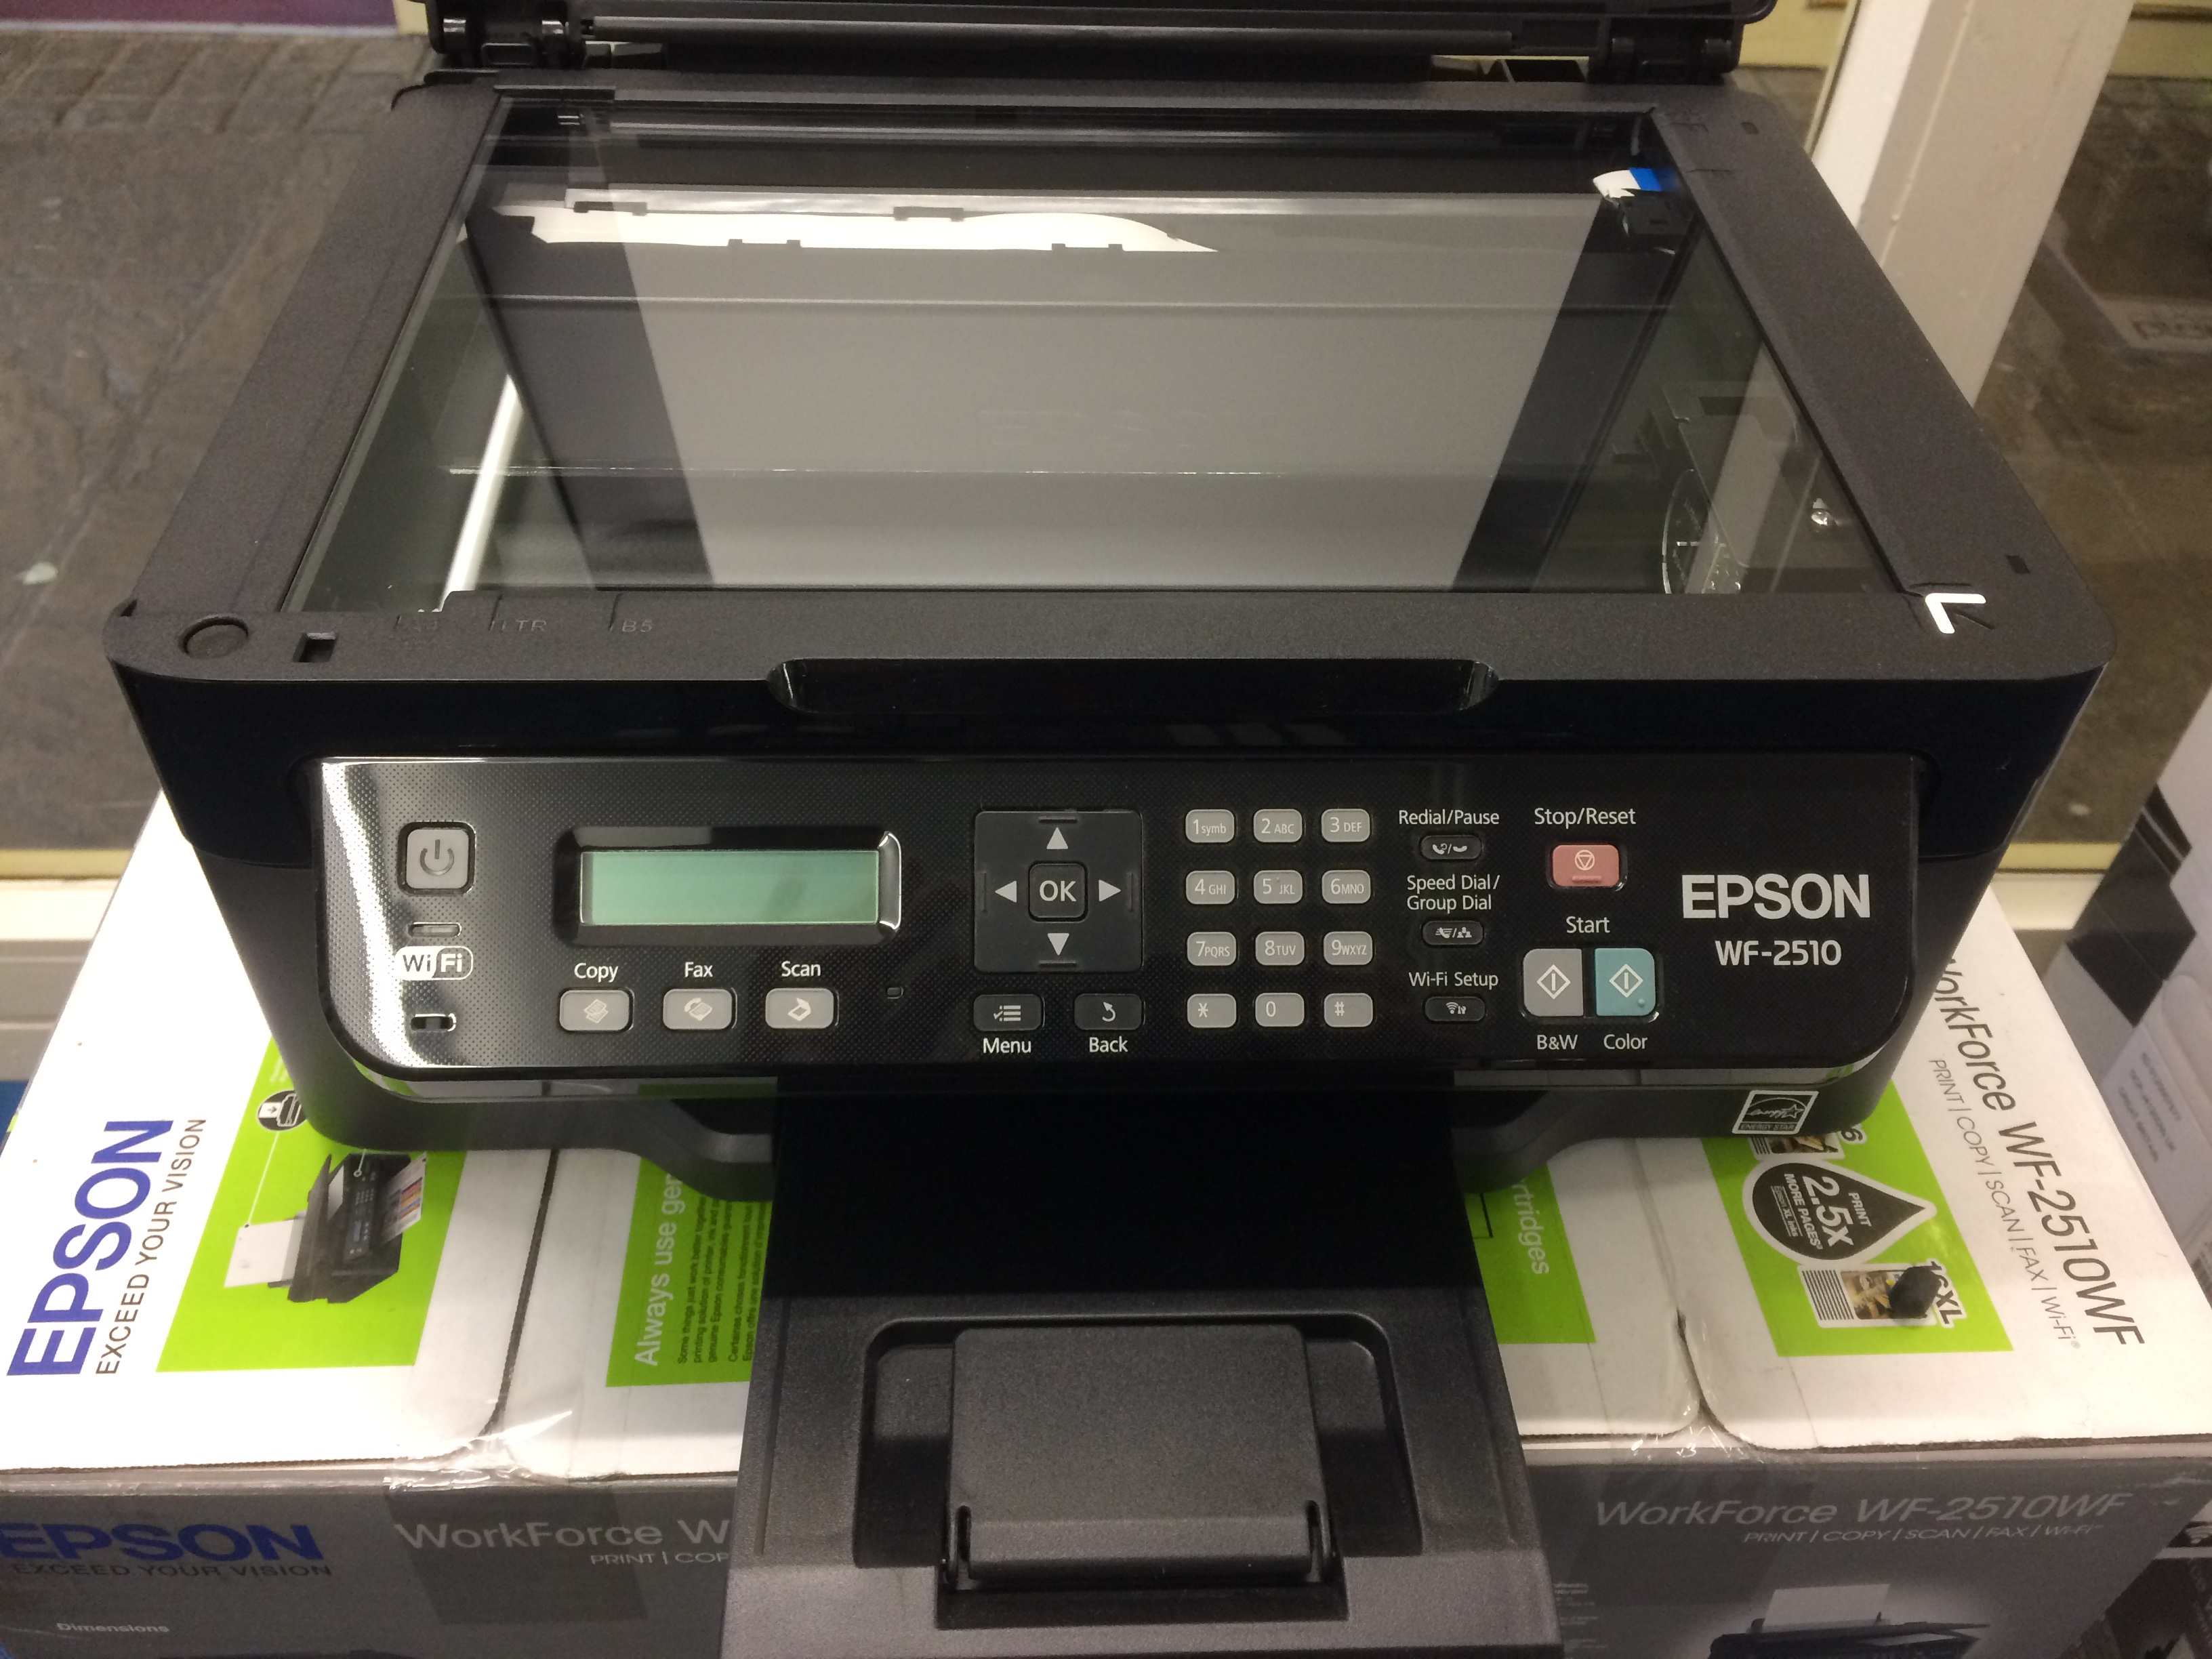 Epson Workforce WF-2510WF Printer With Scanner Lid Up.